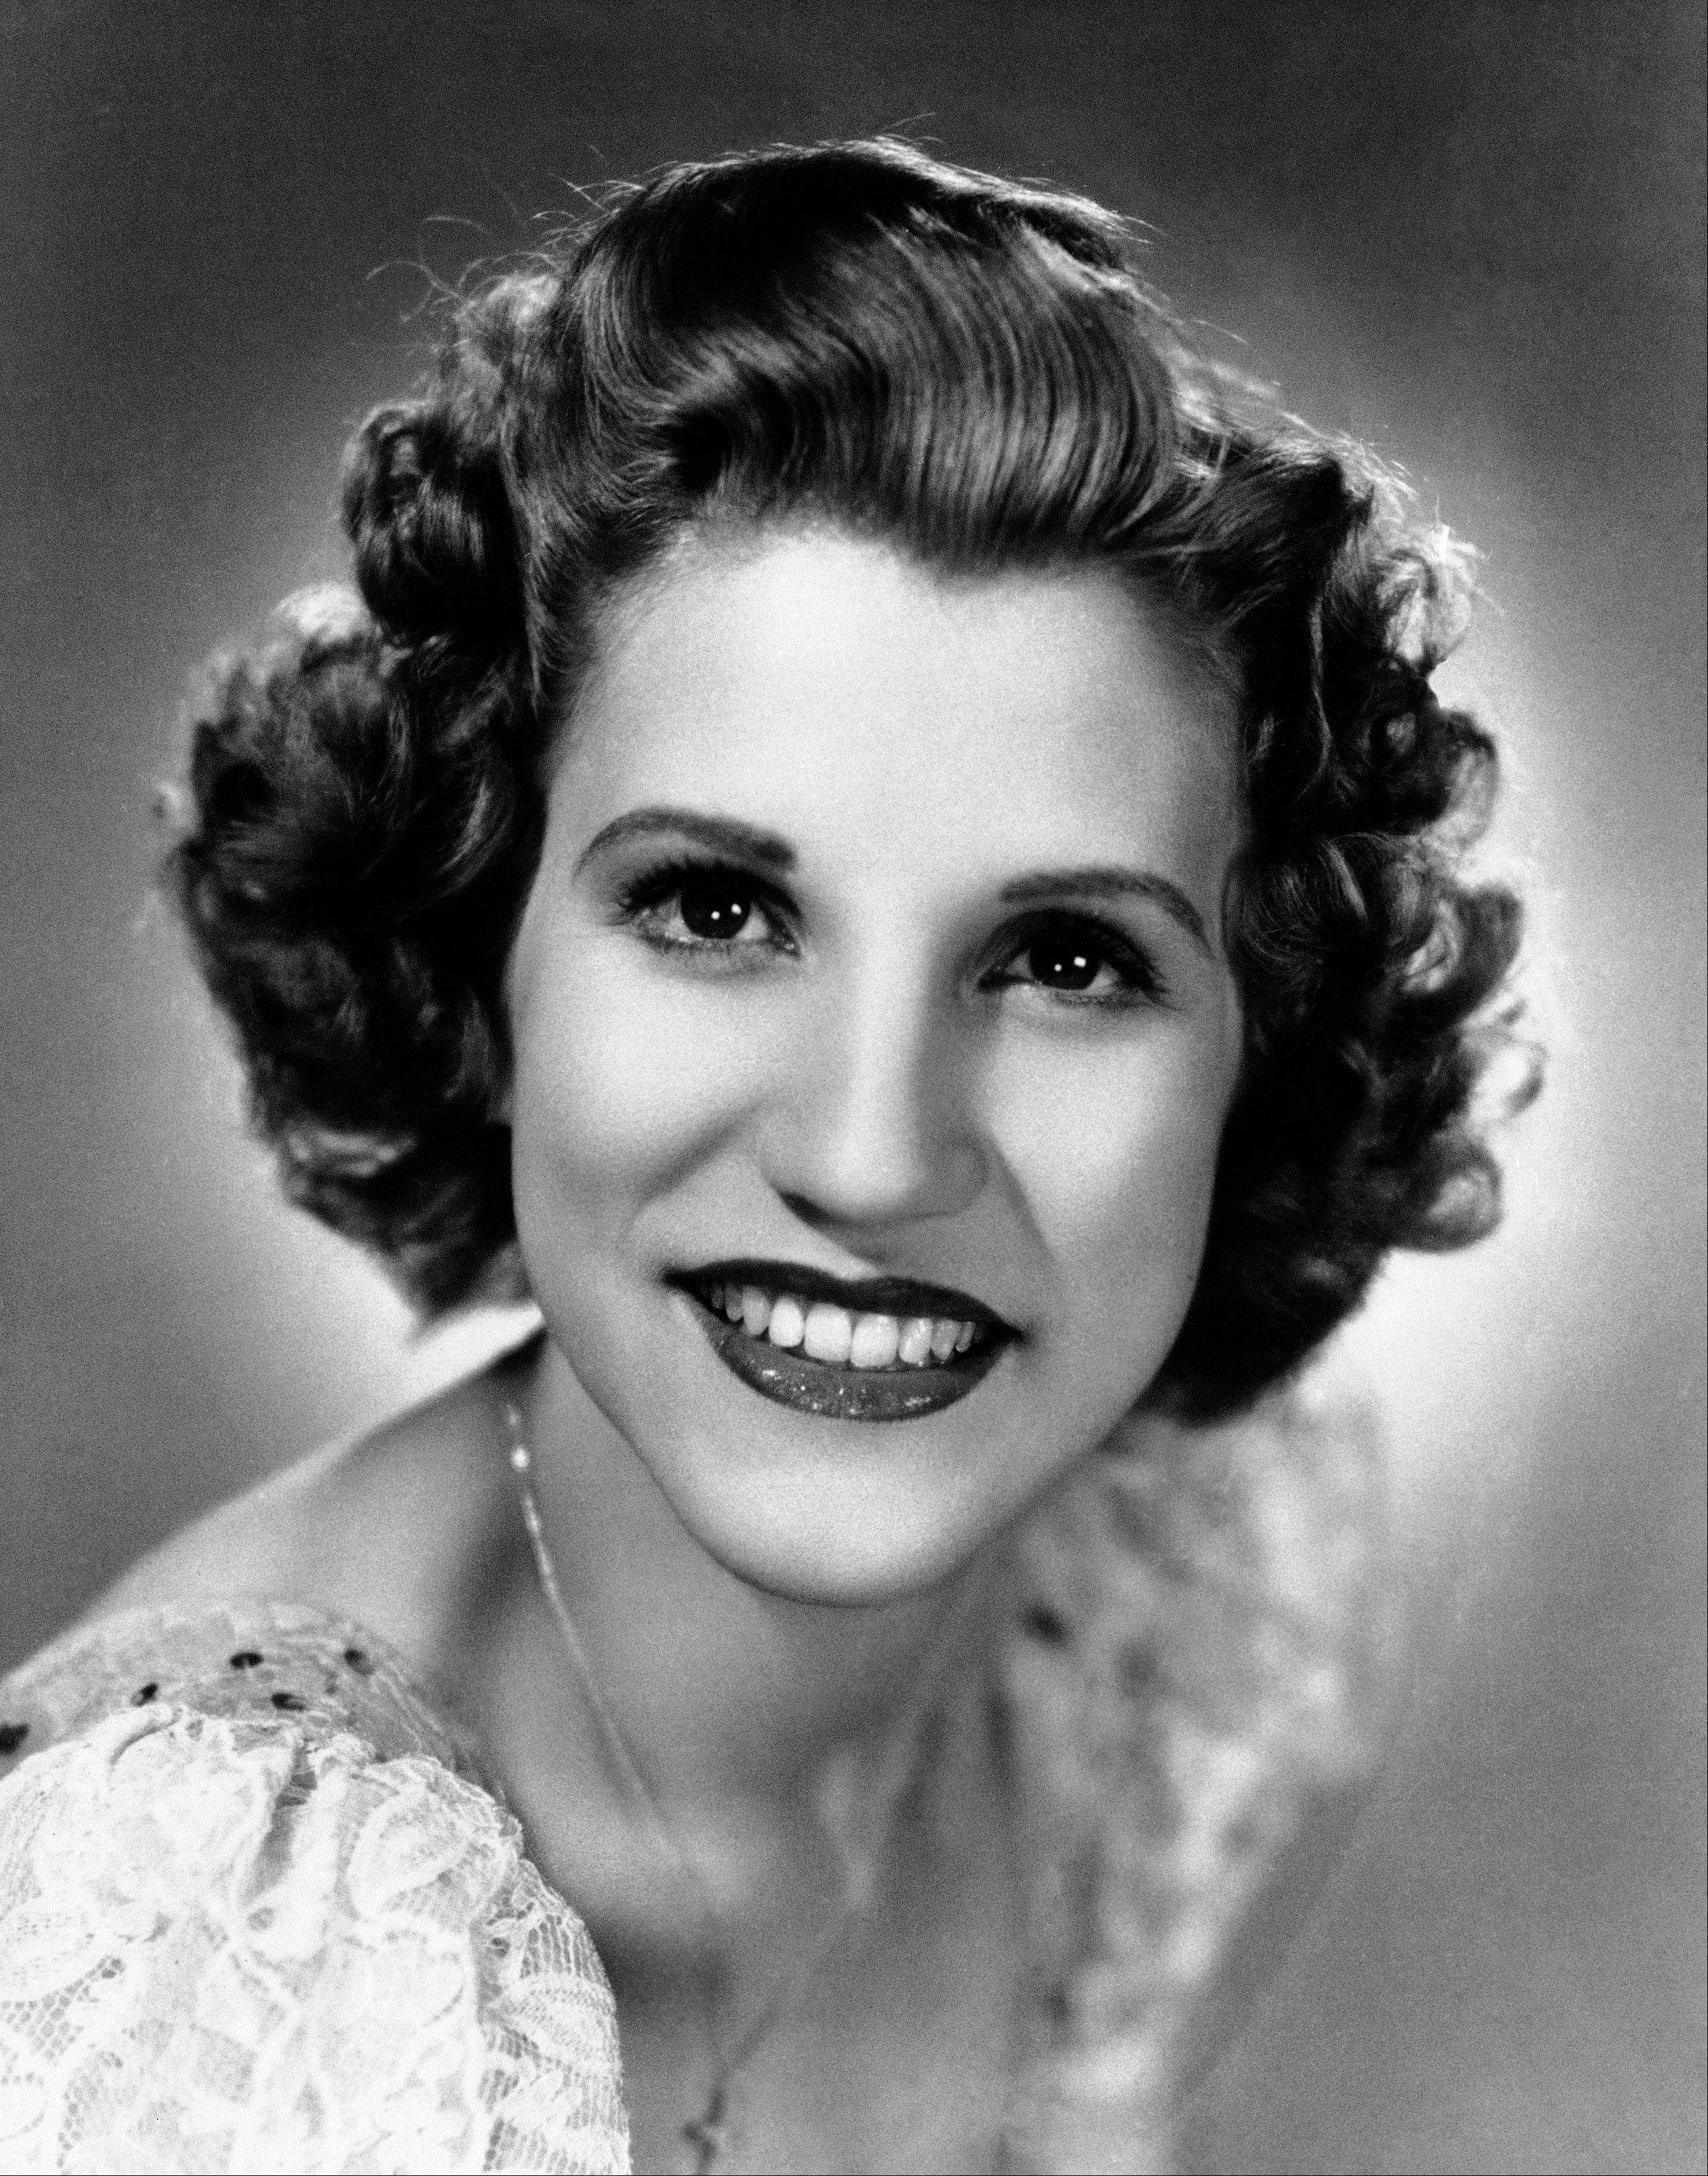 Singer Patty Andrews, the last survivor of the three singing Andrews sisters, died in Los Angeles at age 94.